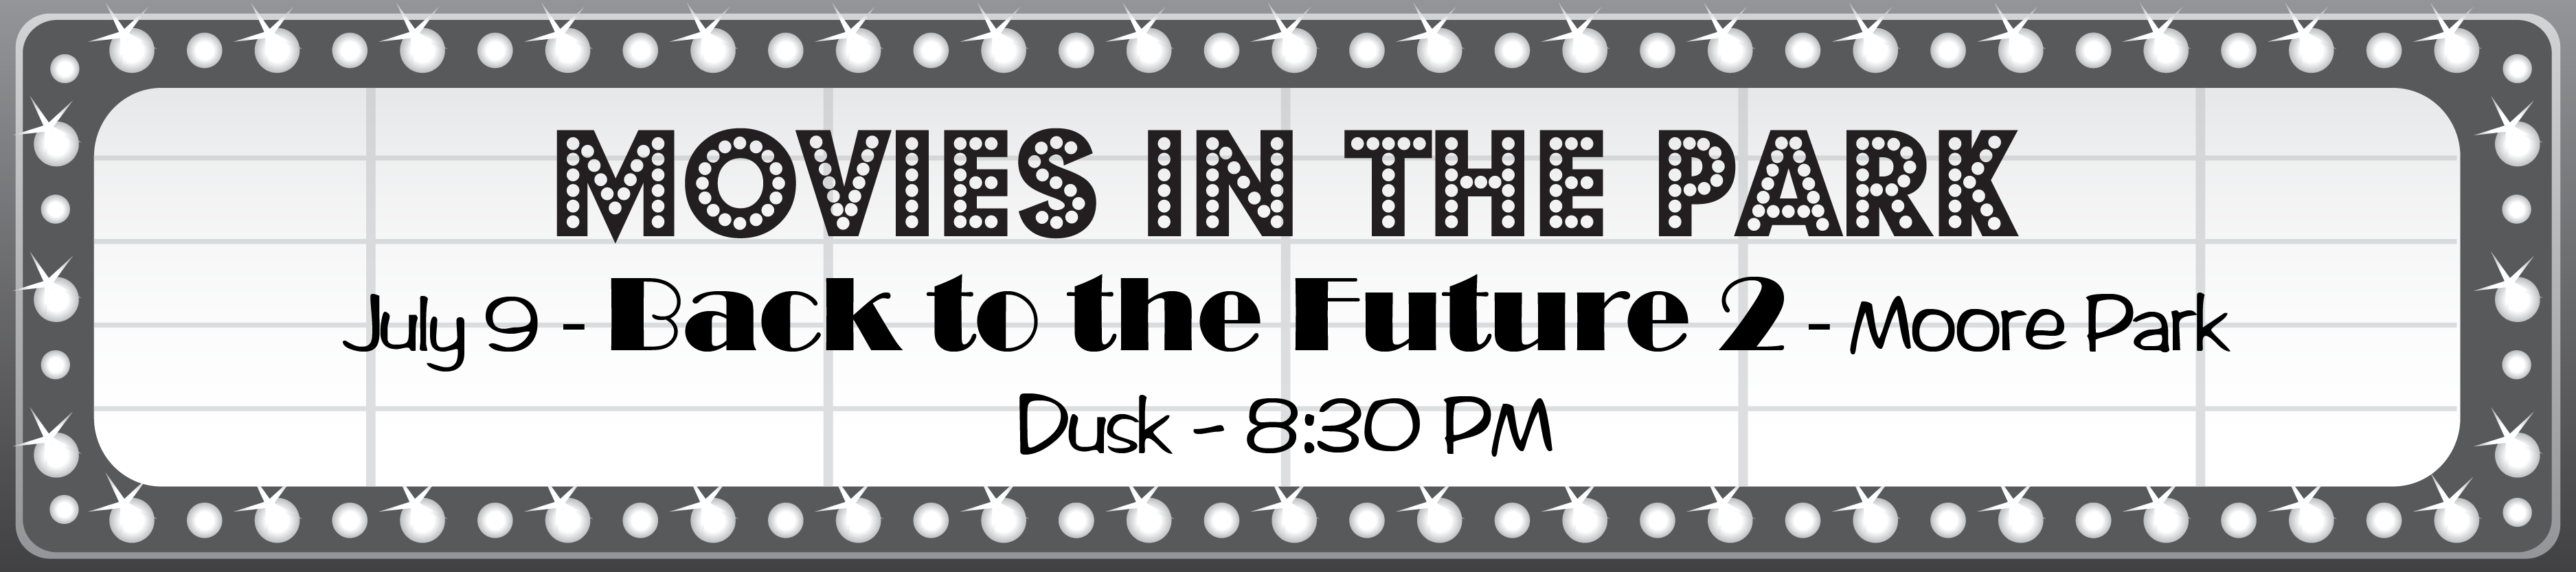 Movies in the Park - July 9 - Back to the Future 2